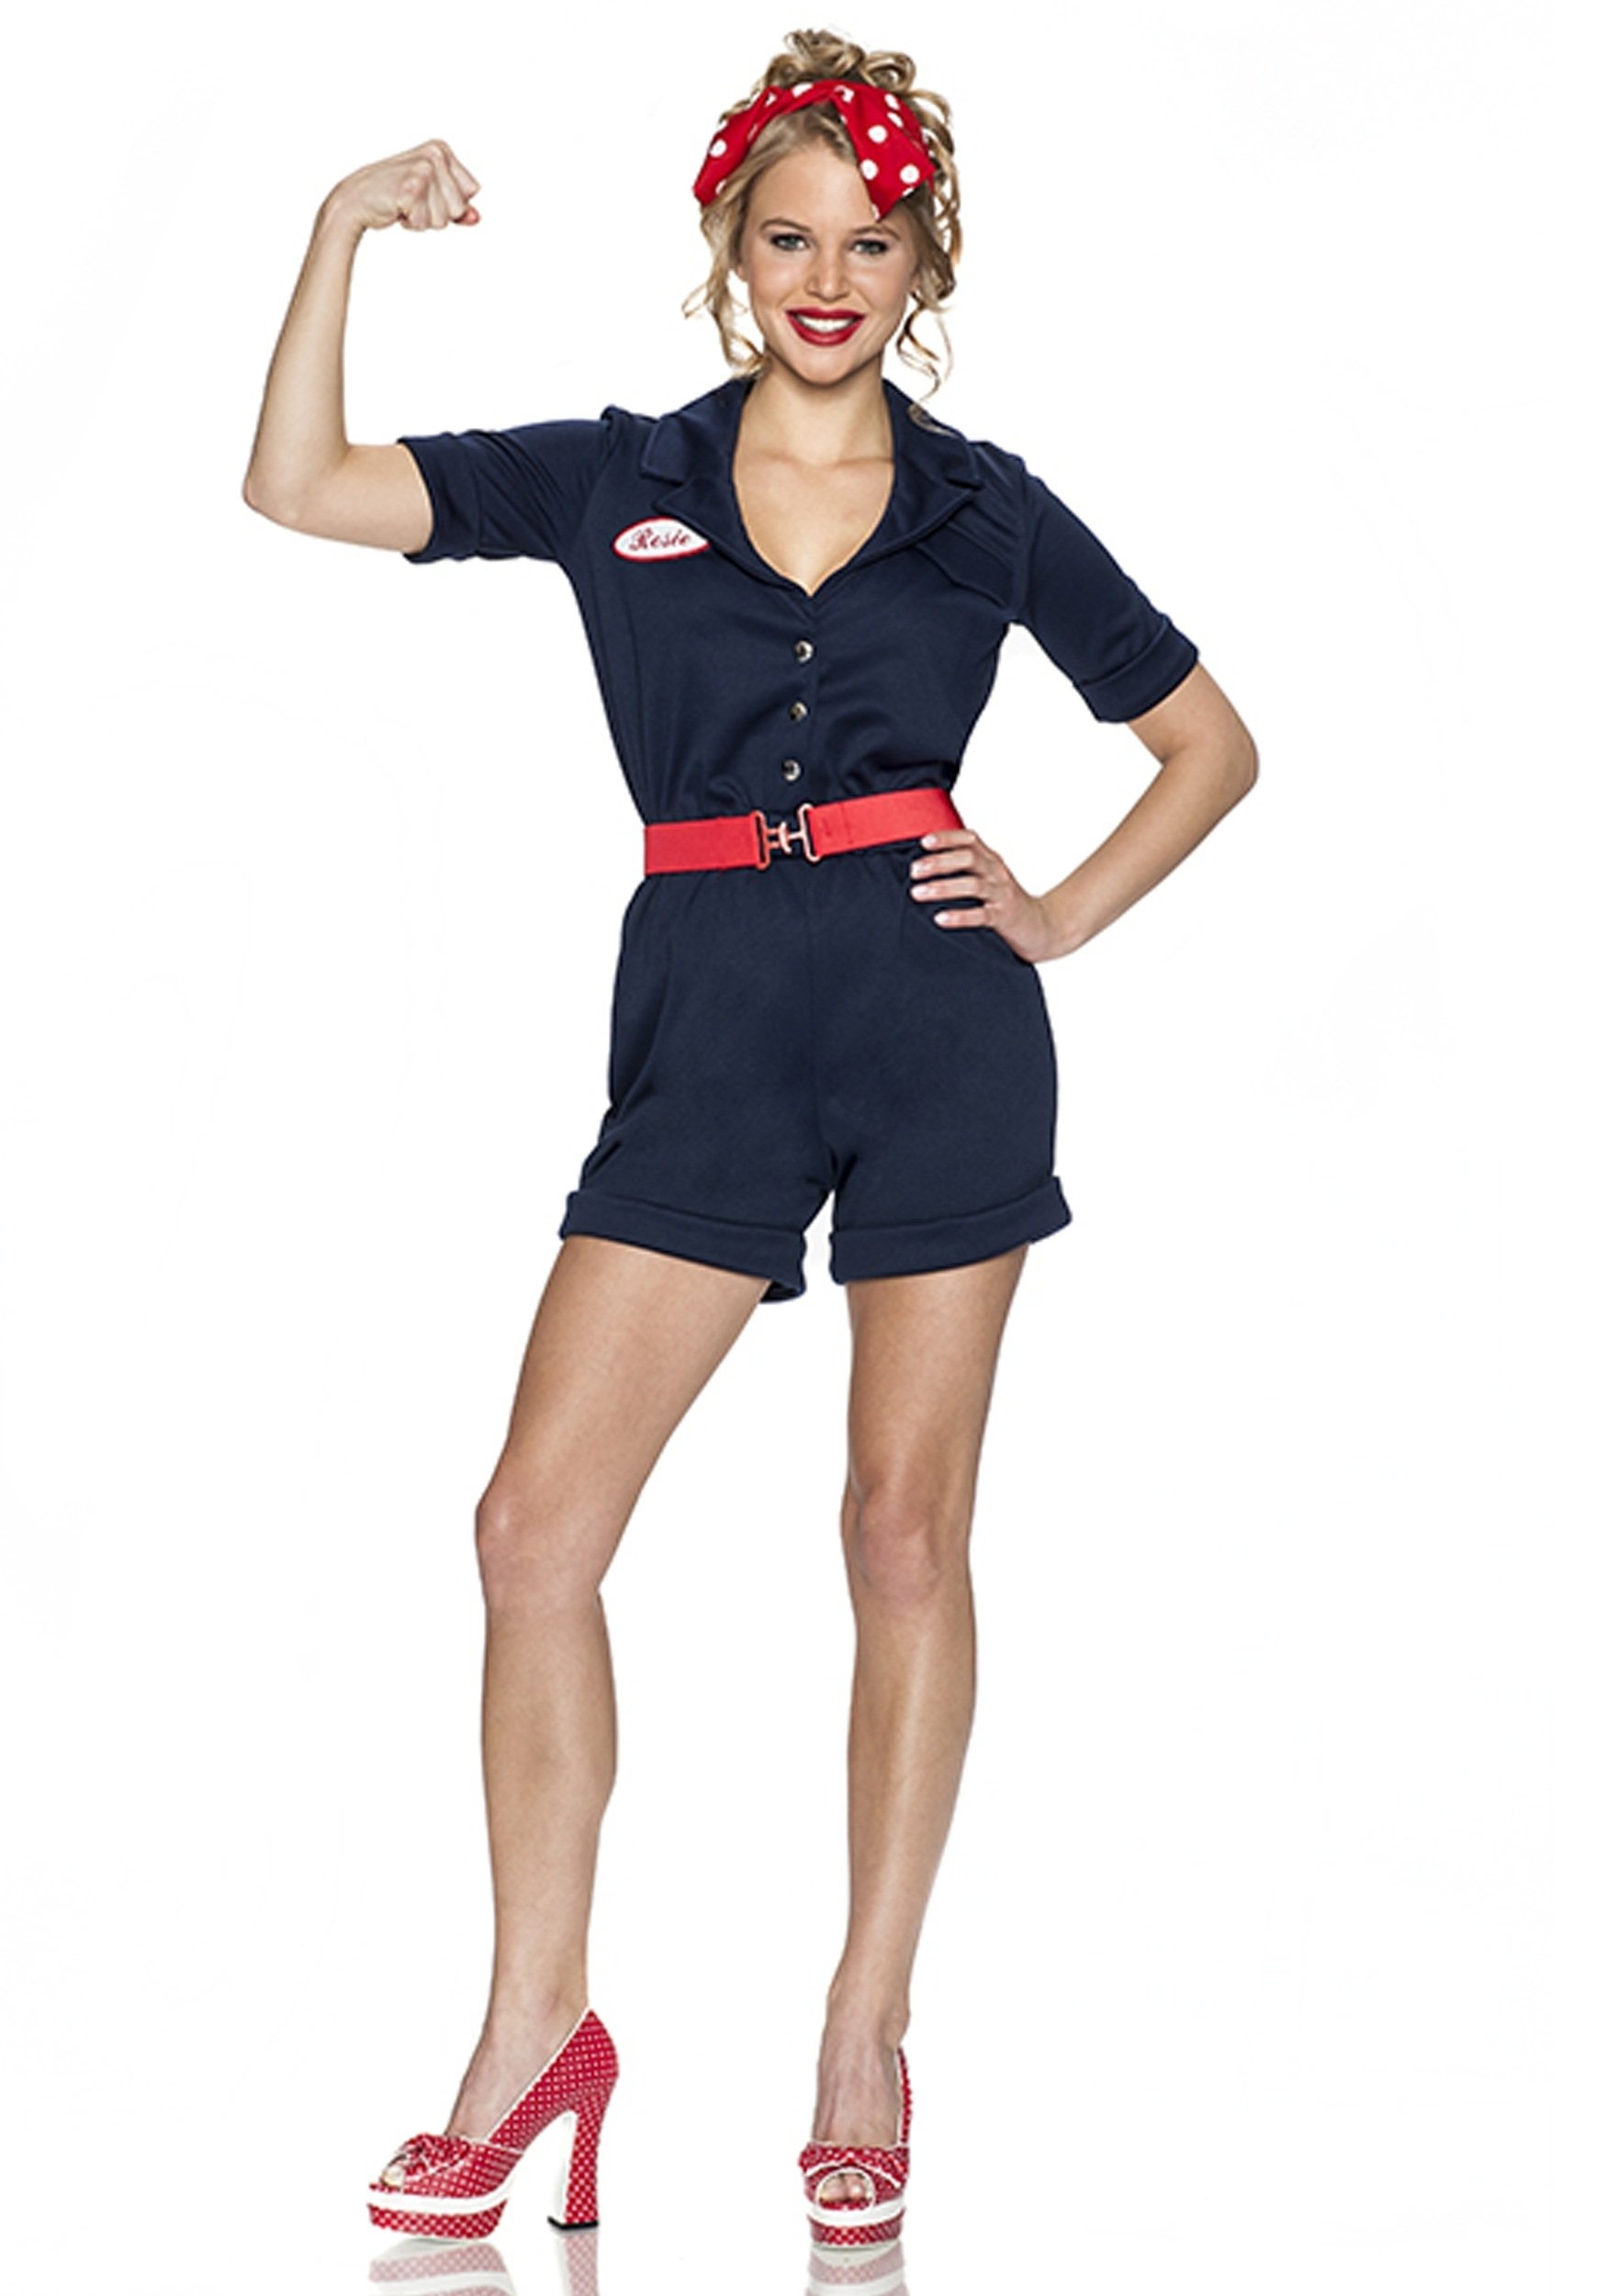 riveting rosie costume, a 1940's throw-back and perfect for our